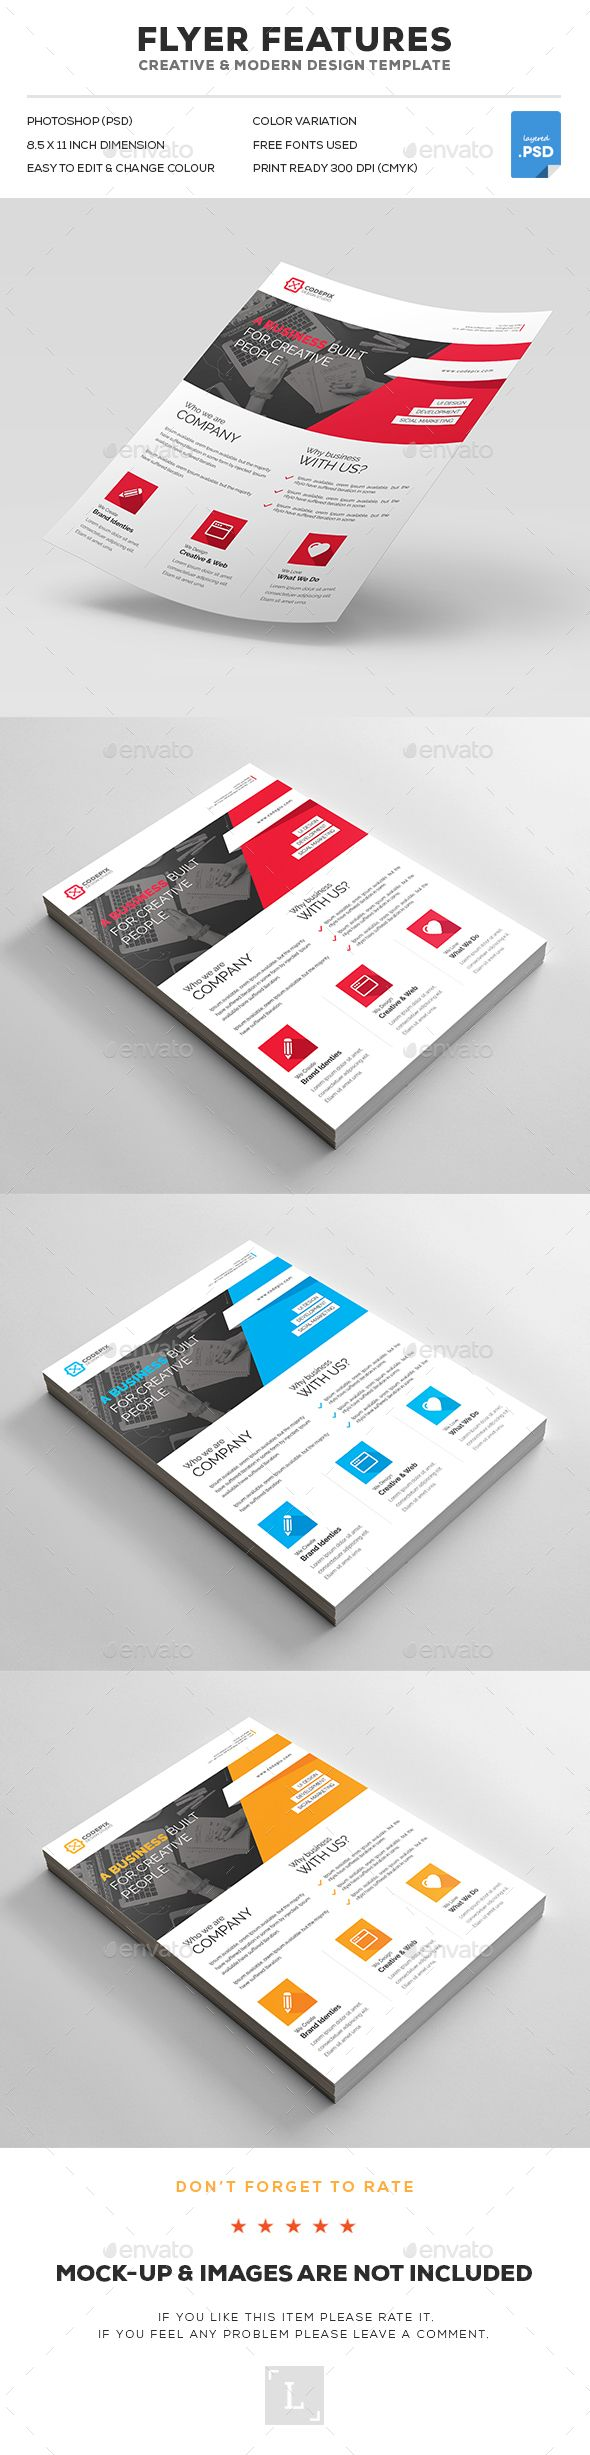 Business Flyer Template PSD. Download here: http://graphicriver.net/item/business-flyer/16828420?ref=ksioks